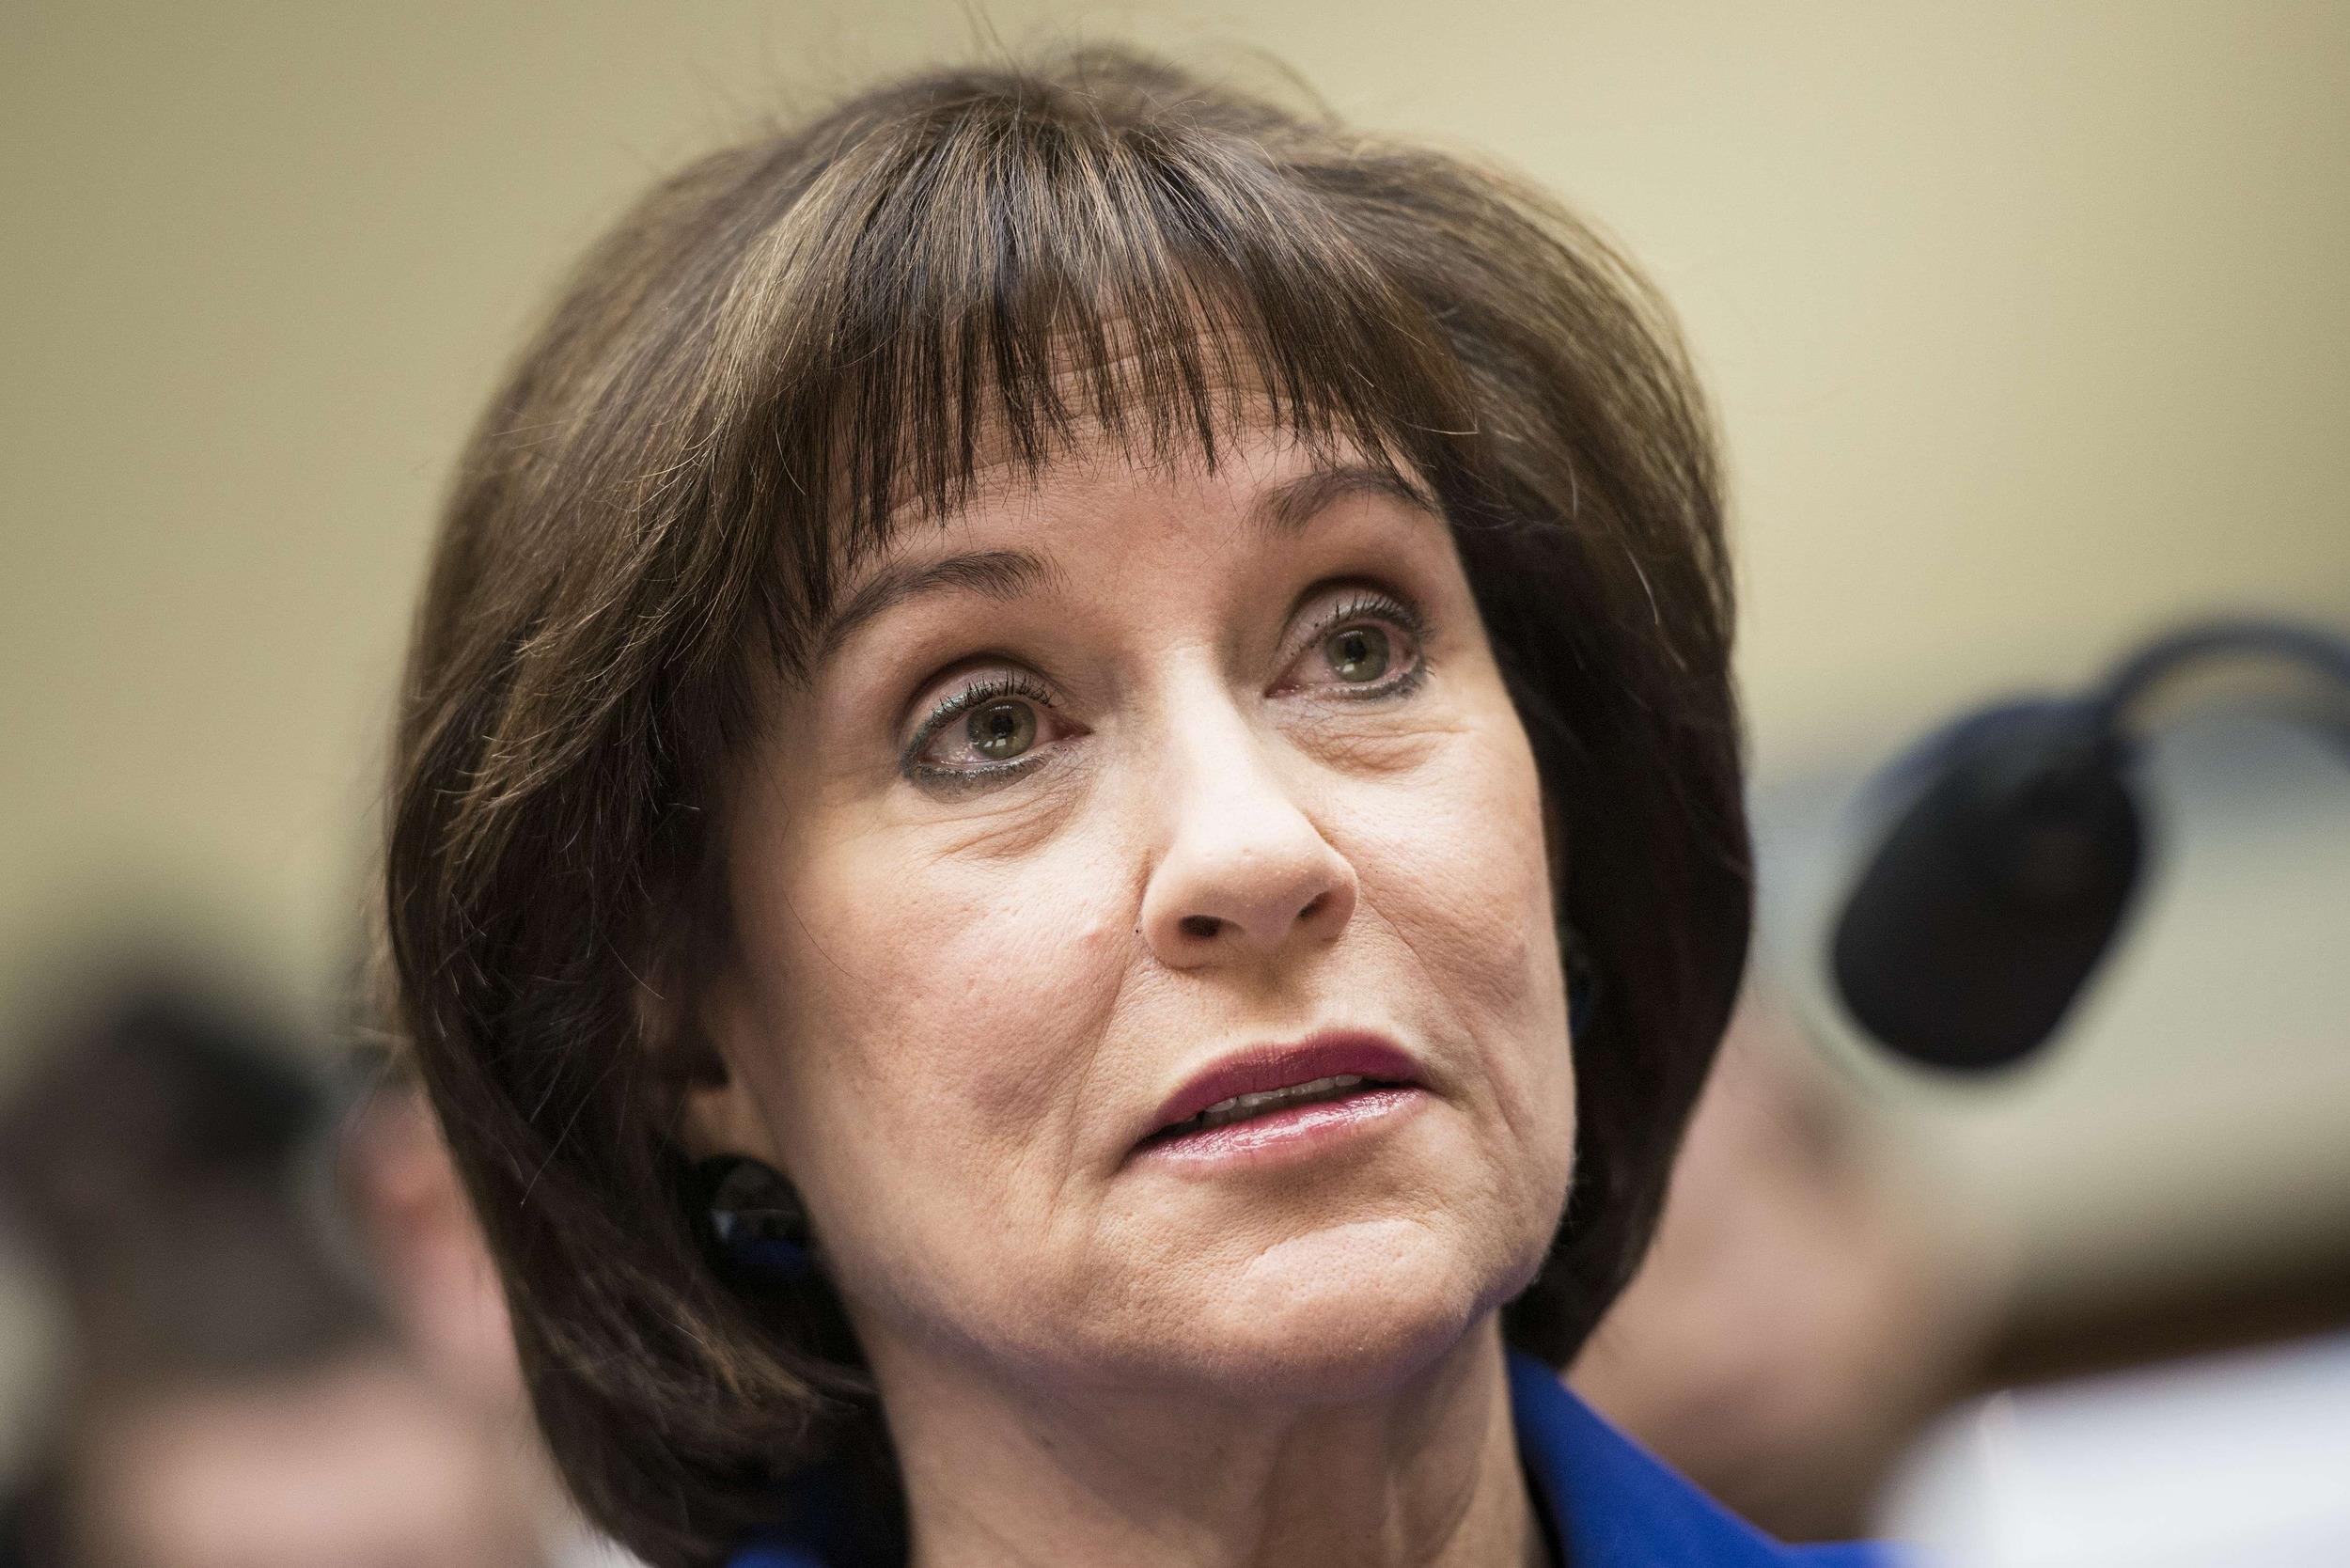 Image: US-POLITICS-IRS-LERNER